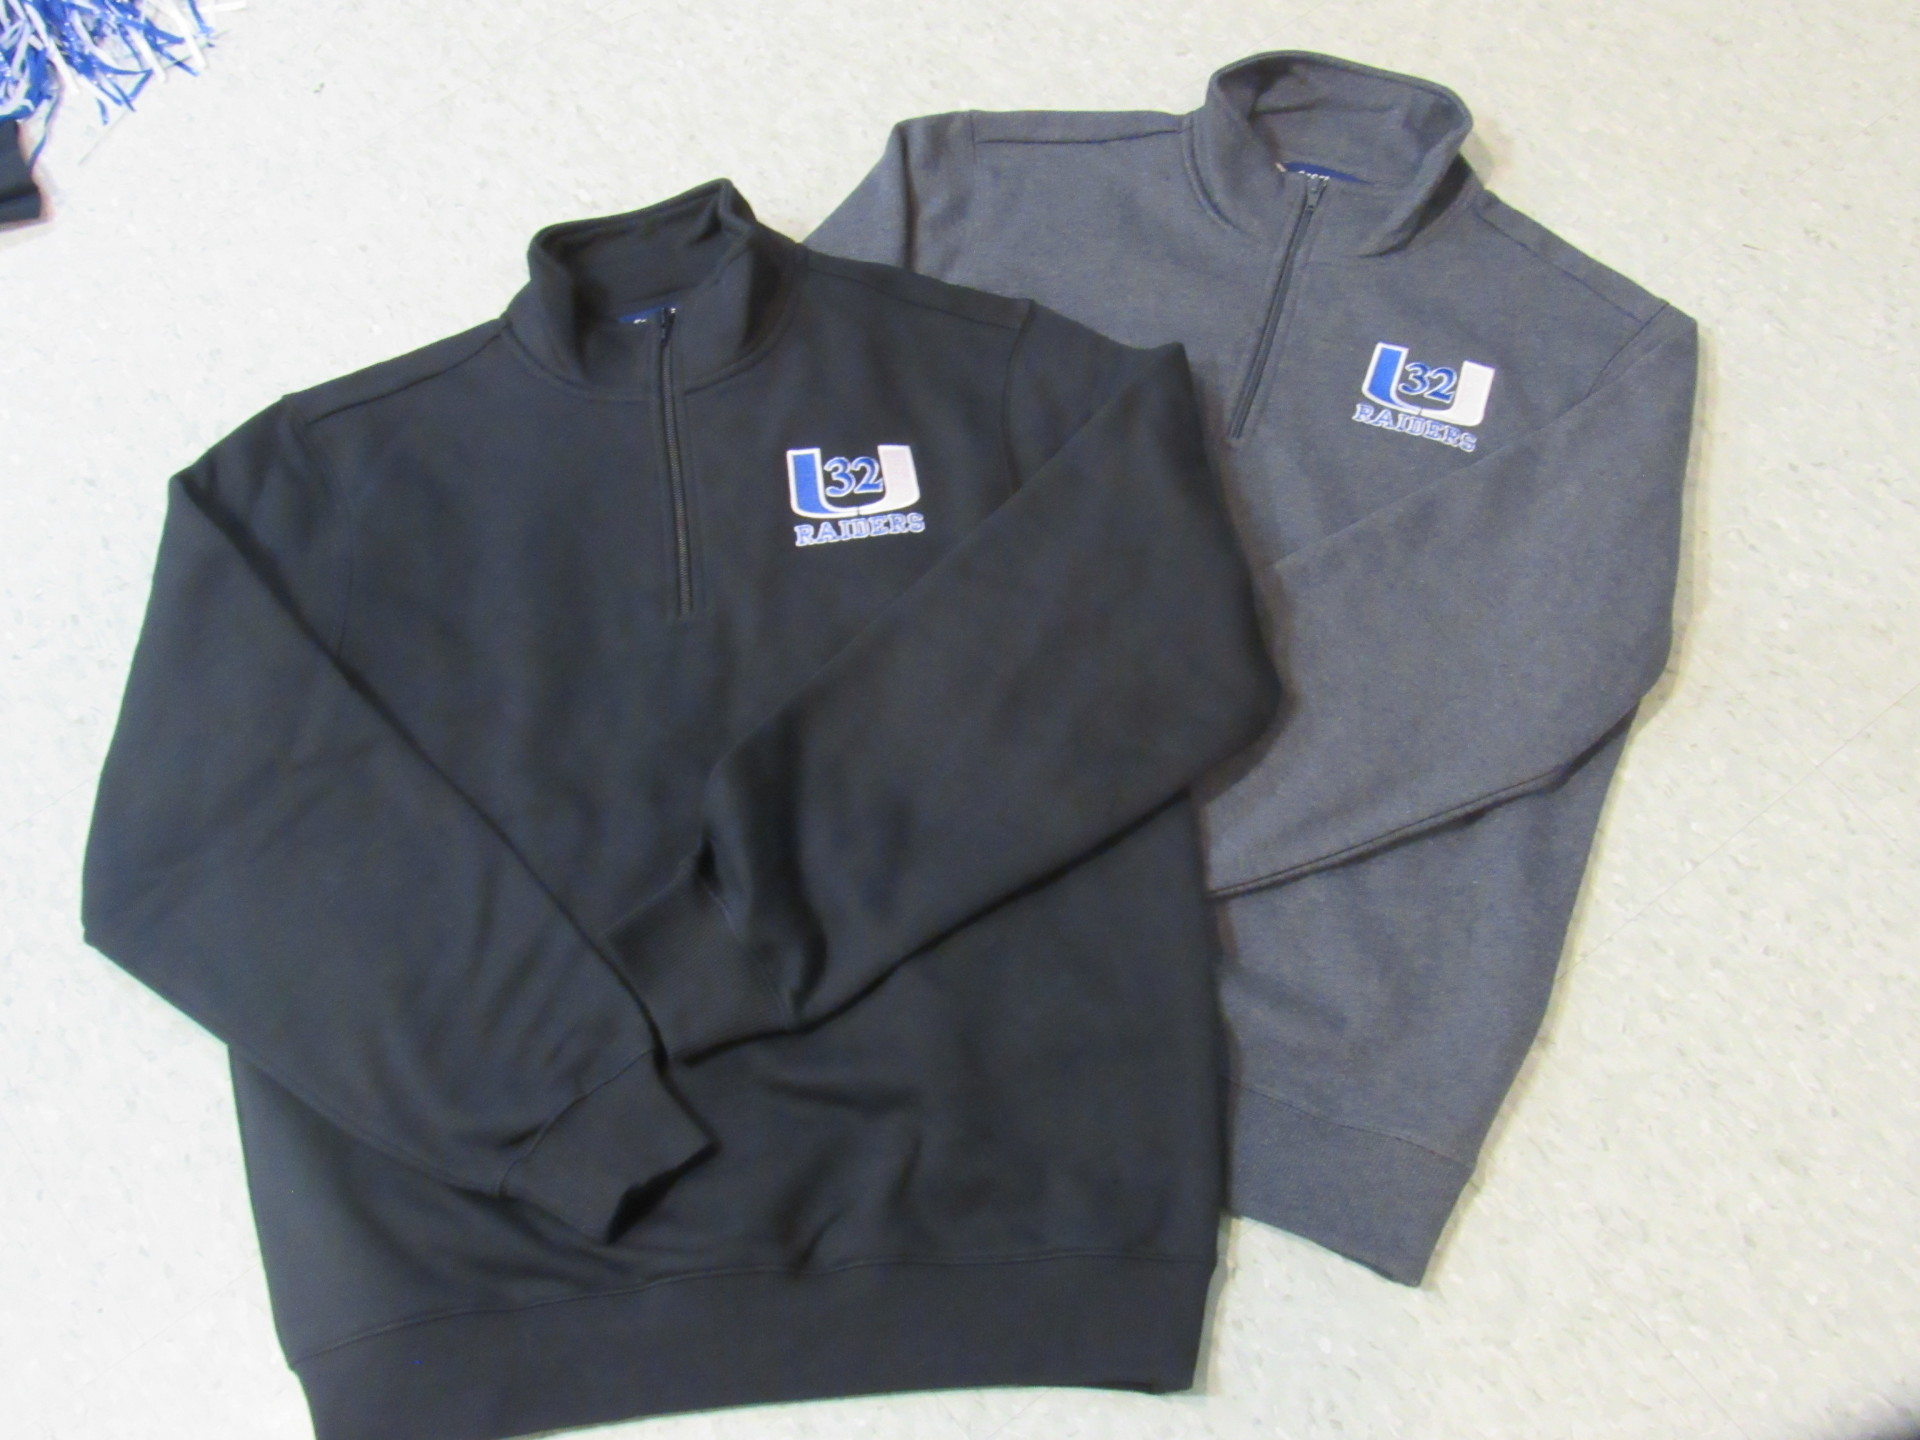 1/4 Zip Sweatshirts